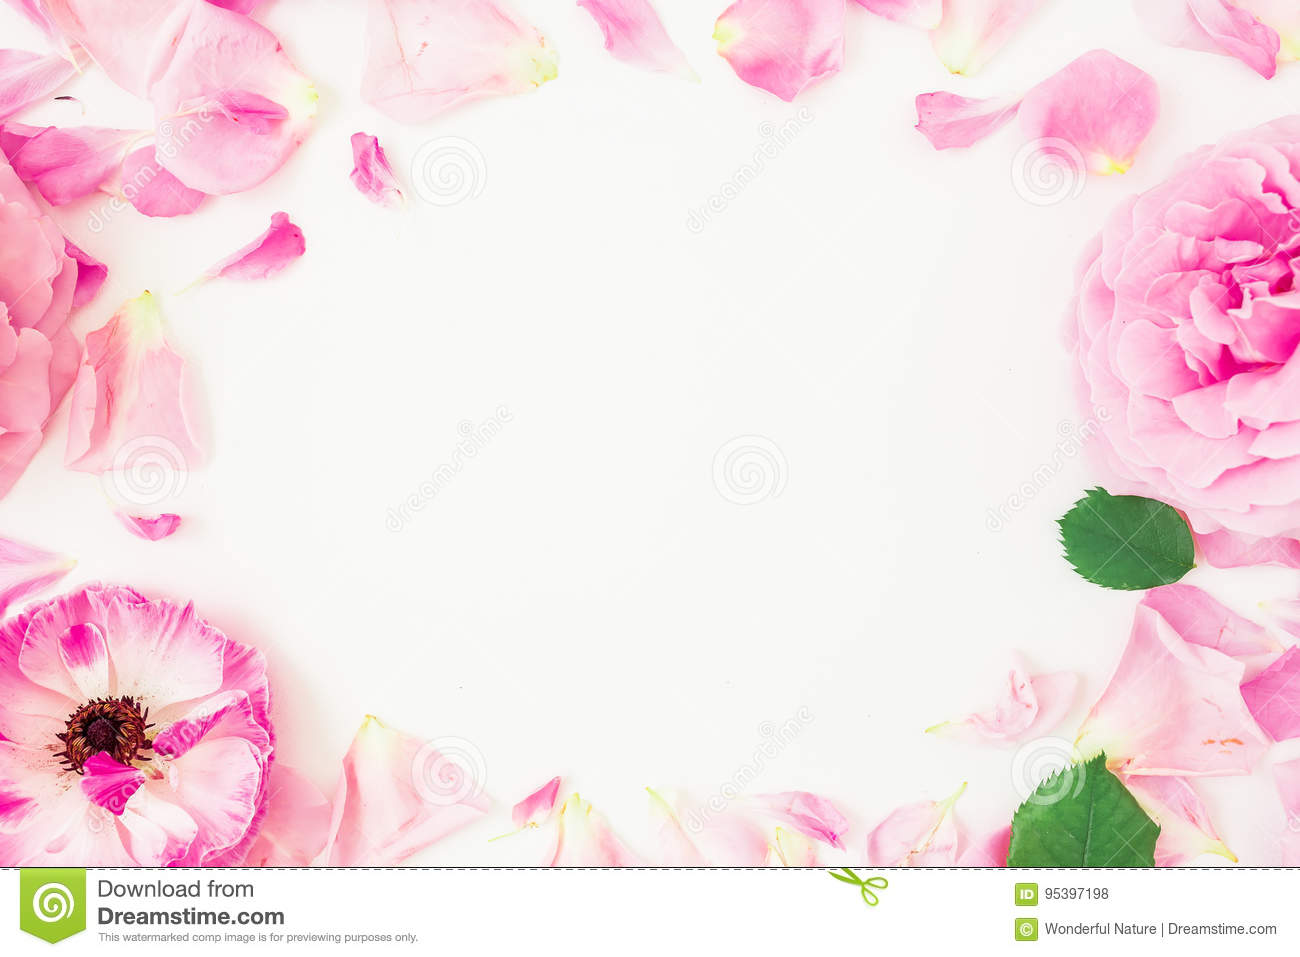 Round frame of pink flowers, petals and leaves on white background. Floral lifestyle composition. Flat lay, top view.